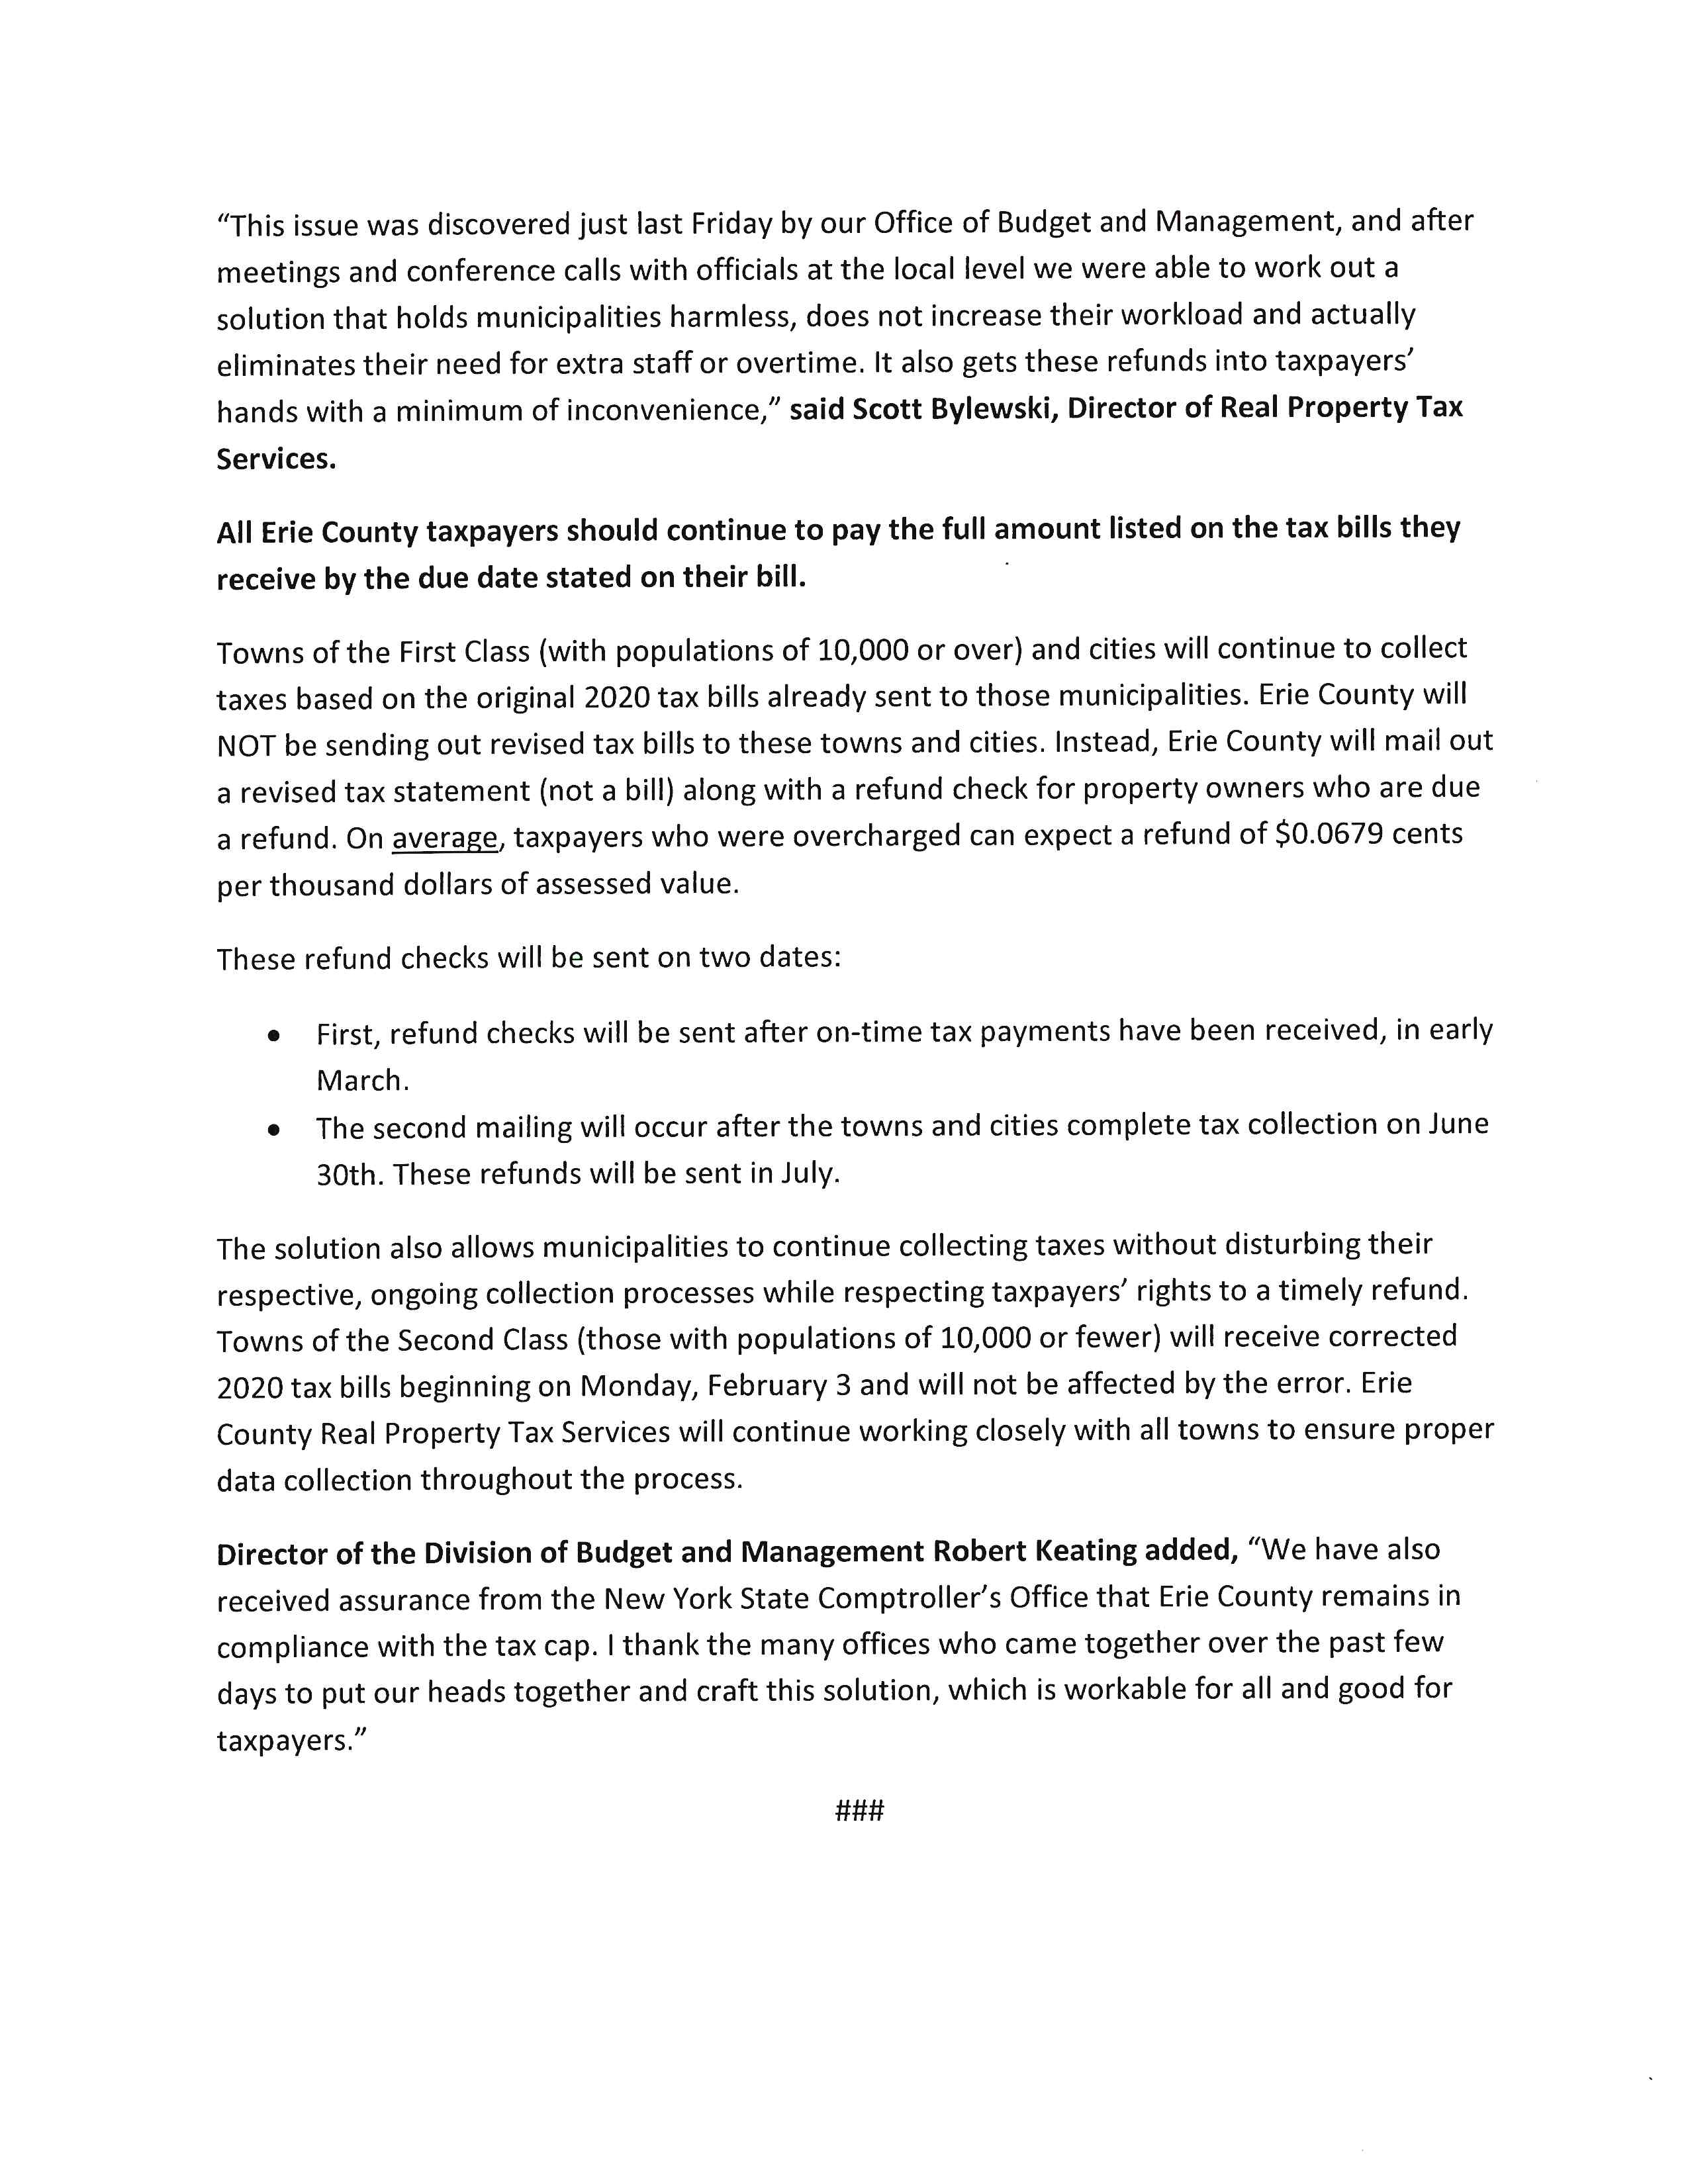 2020 01 29 EC Press Release Tax pg 2